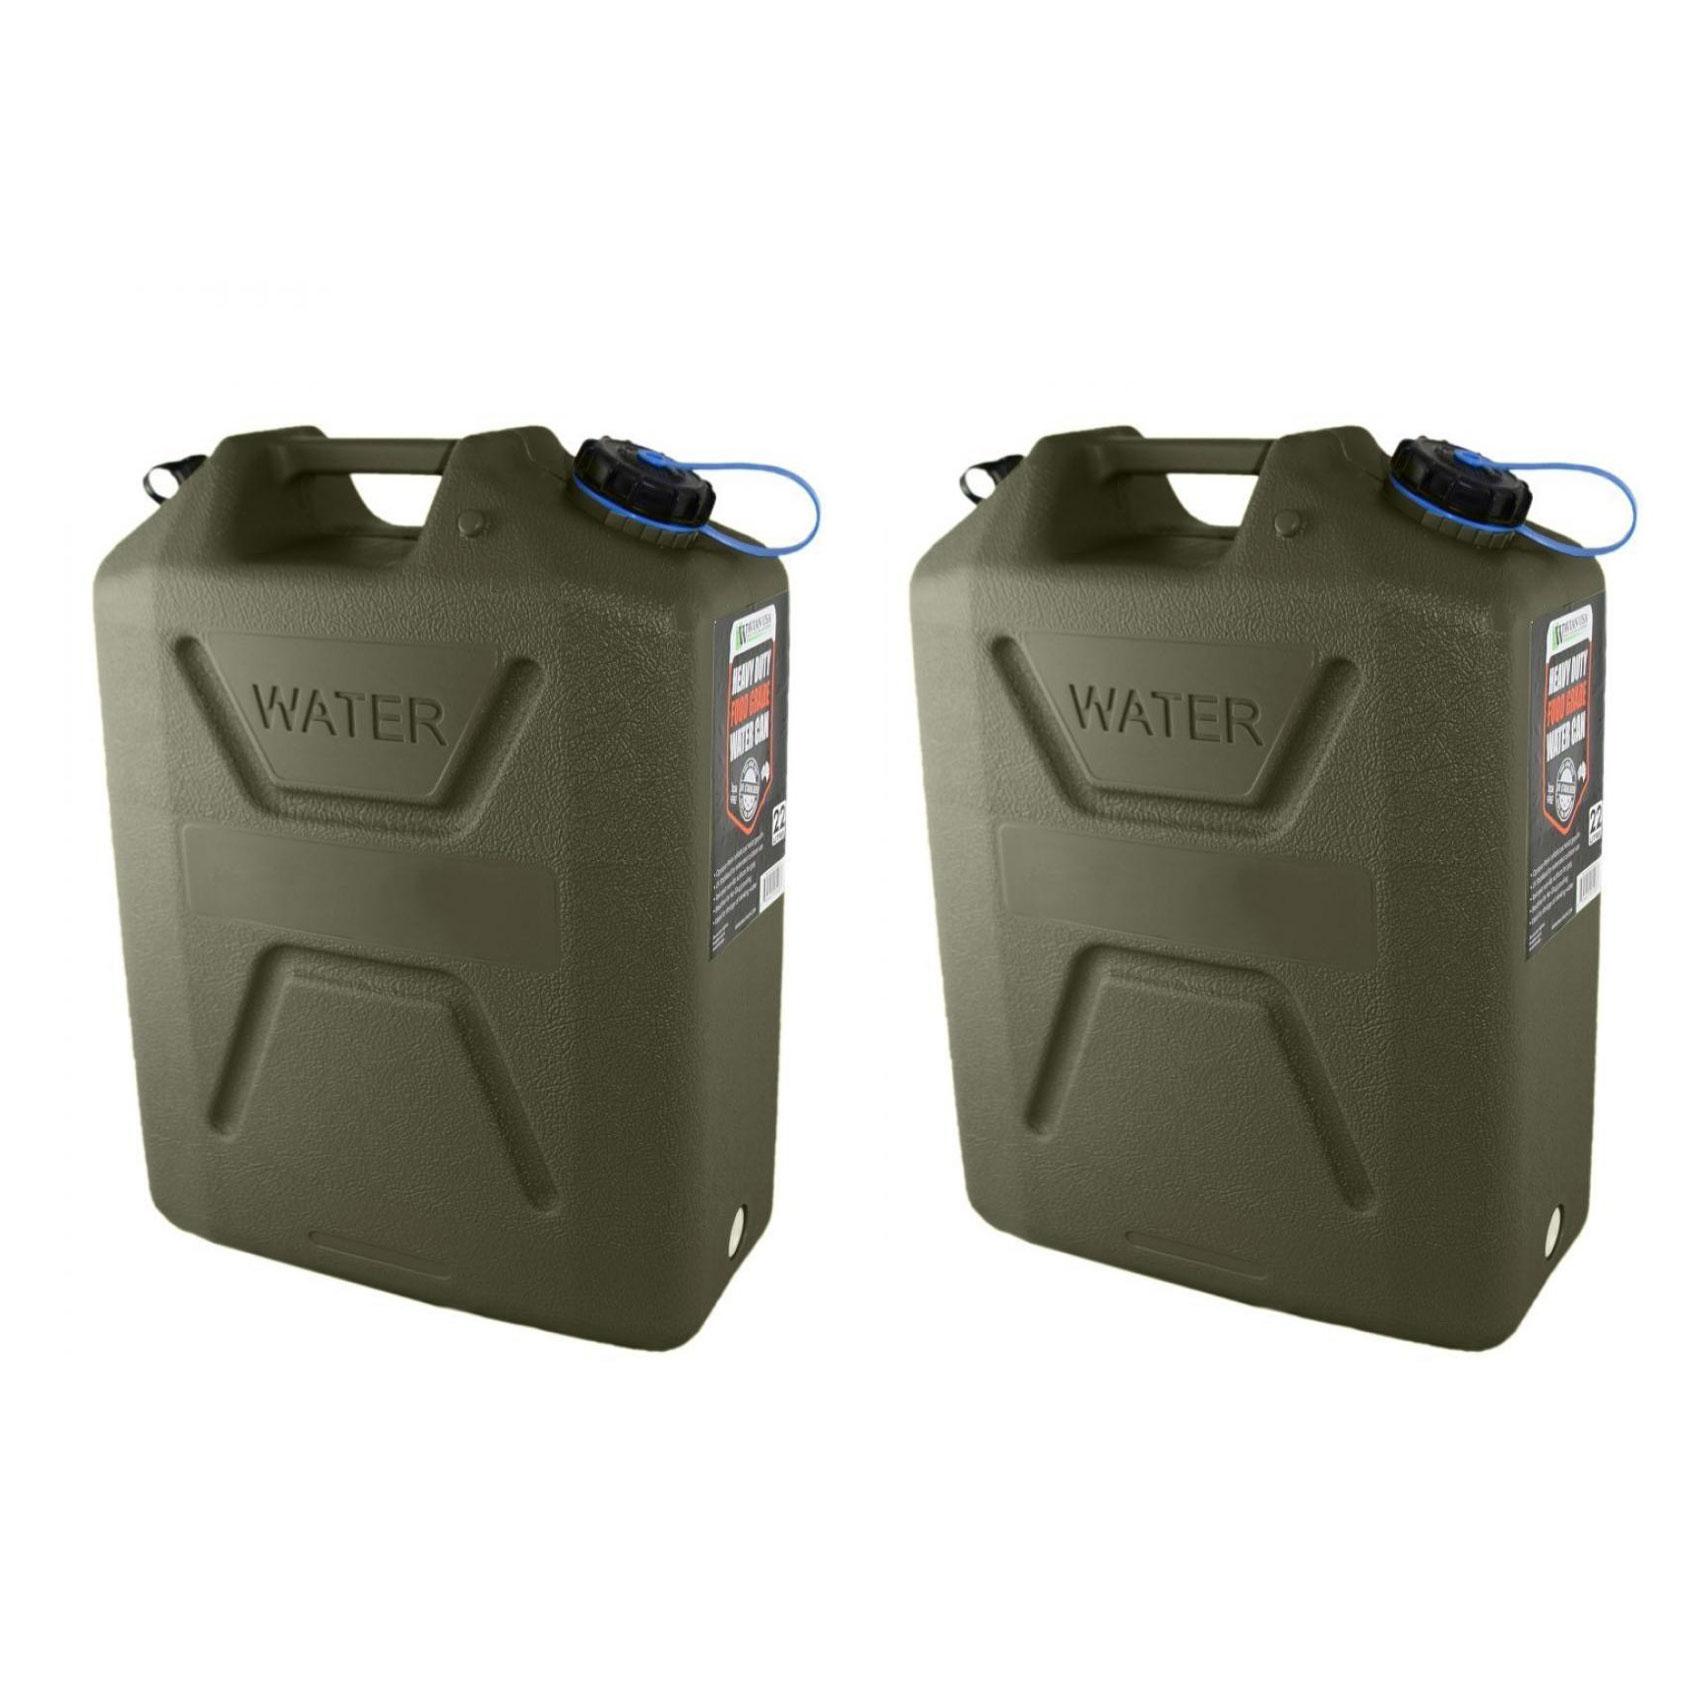 Wavian USA 5 Gallon Plastic Water Jug Can with Easy Pour Spout, Green (2 Pack)